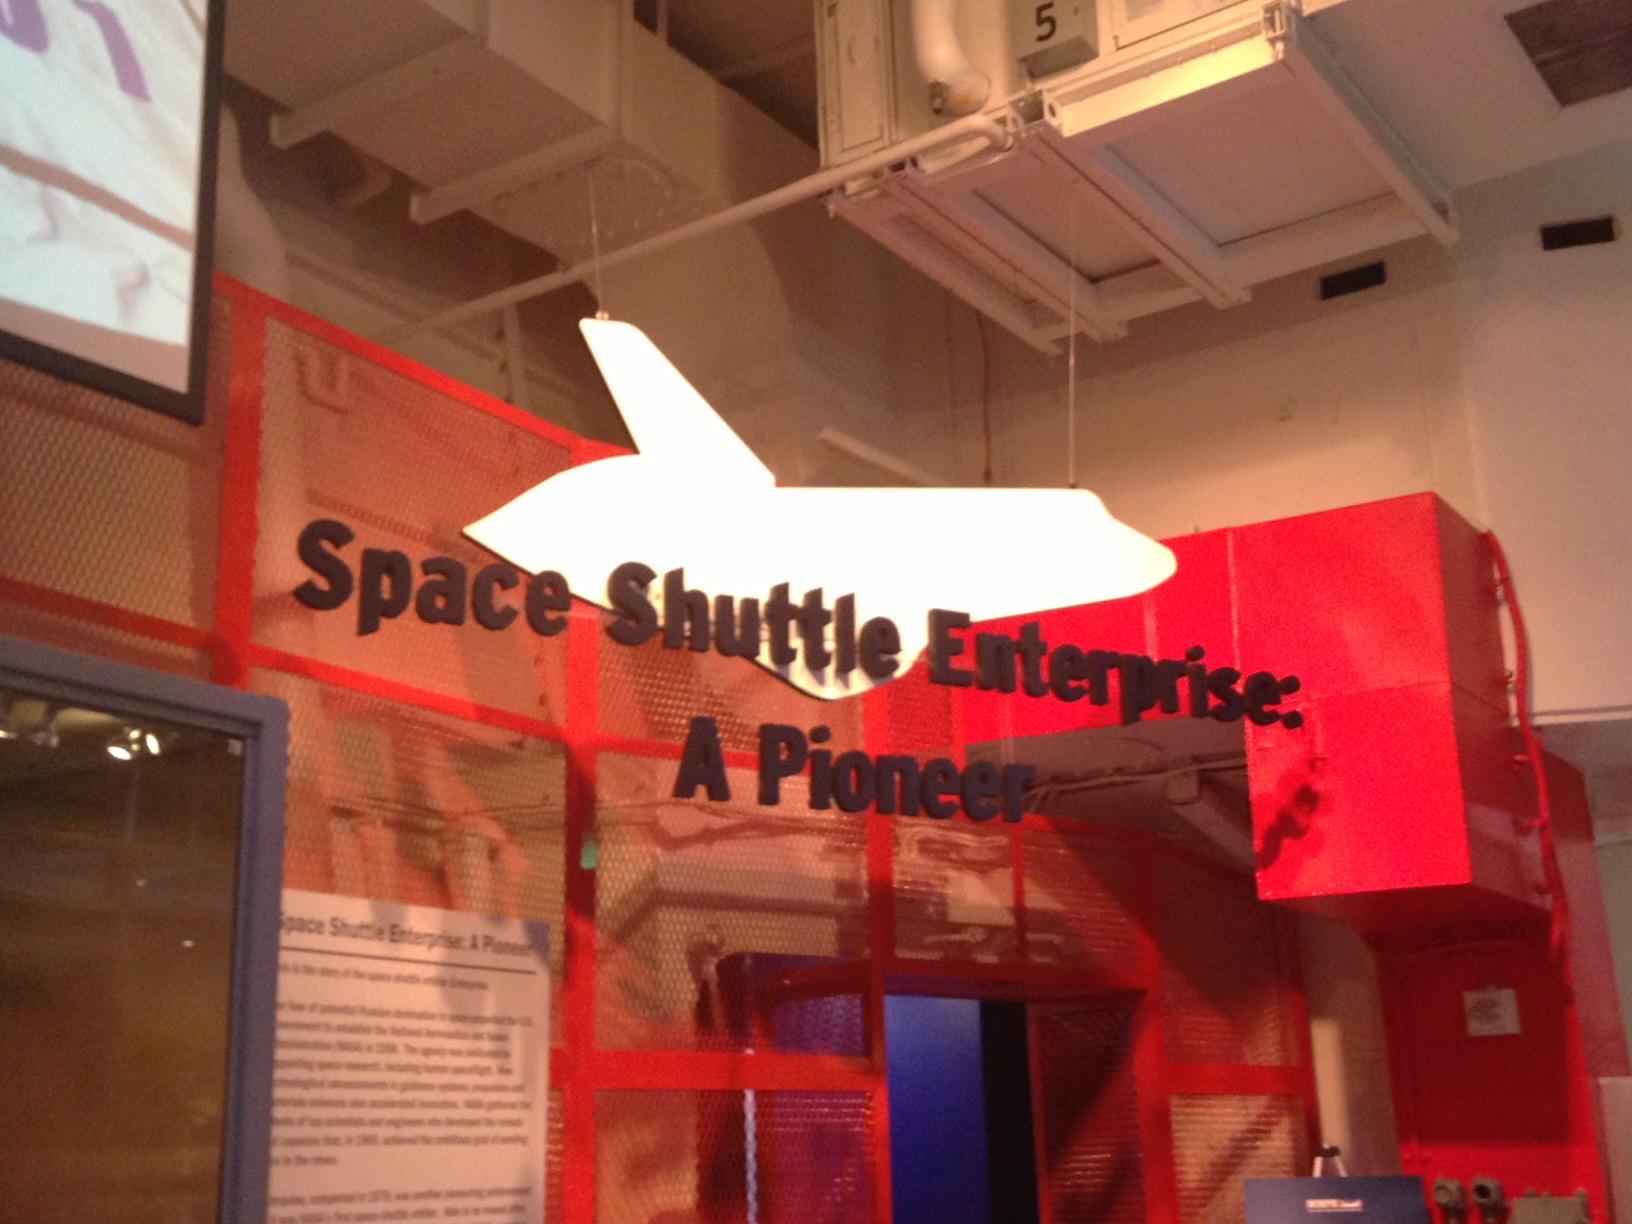 Space Shuttle Enterprise: A Pioneer